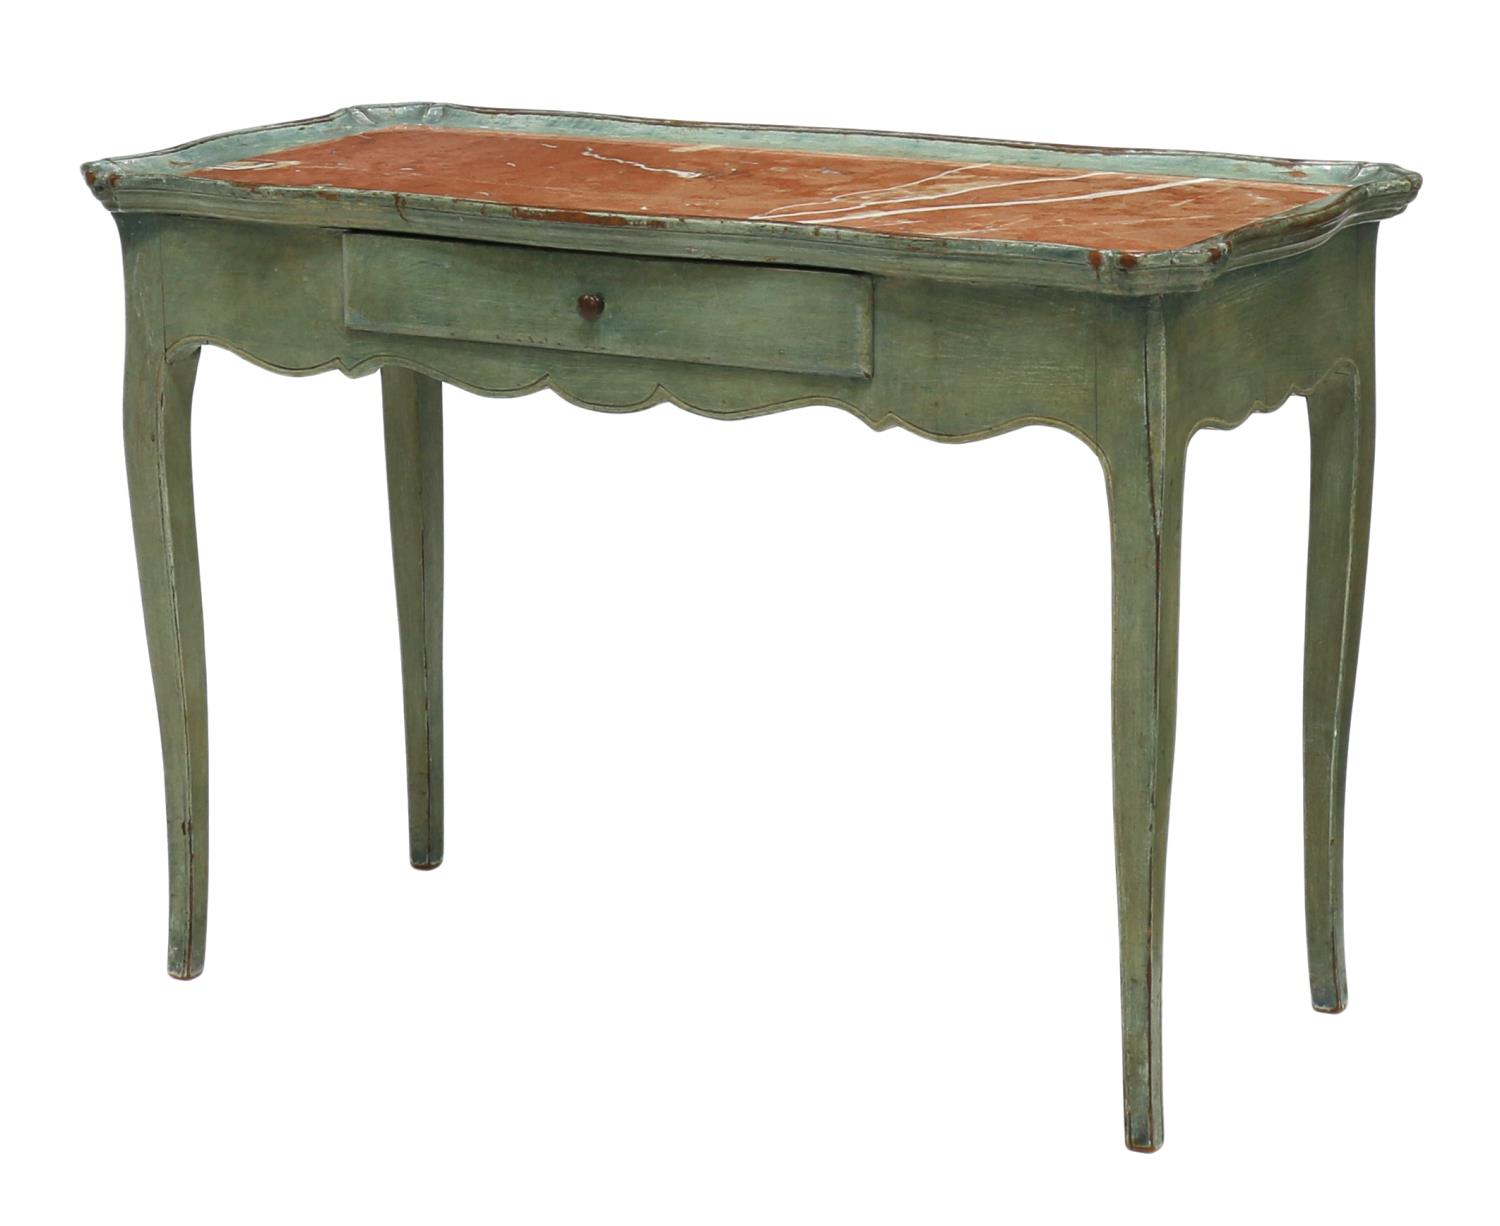 Antique Marble Top Coffee Table January Antiques Mid Century Fine Art Fine Jewelry Day 2